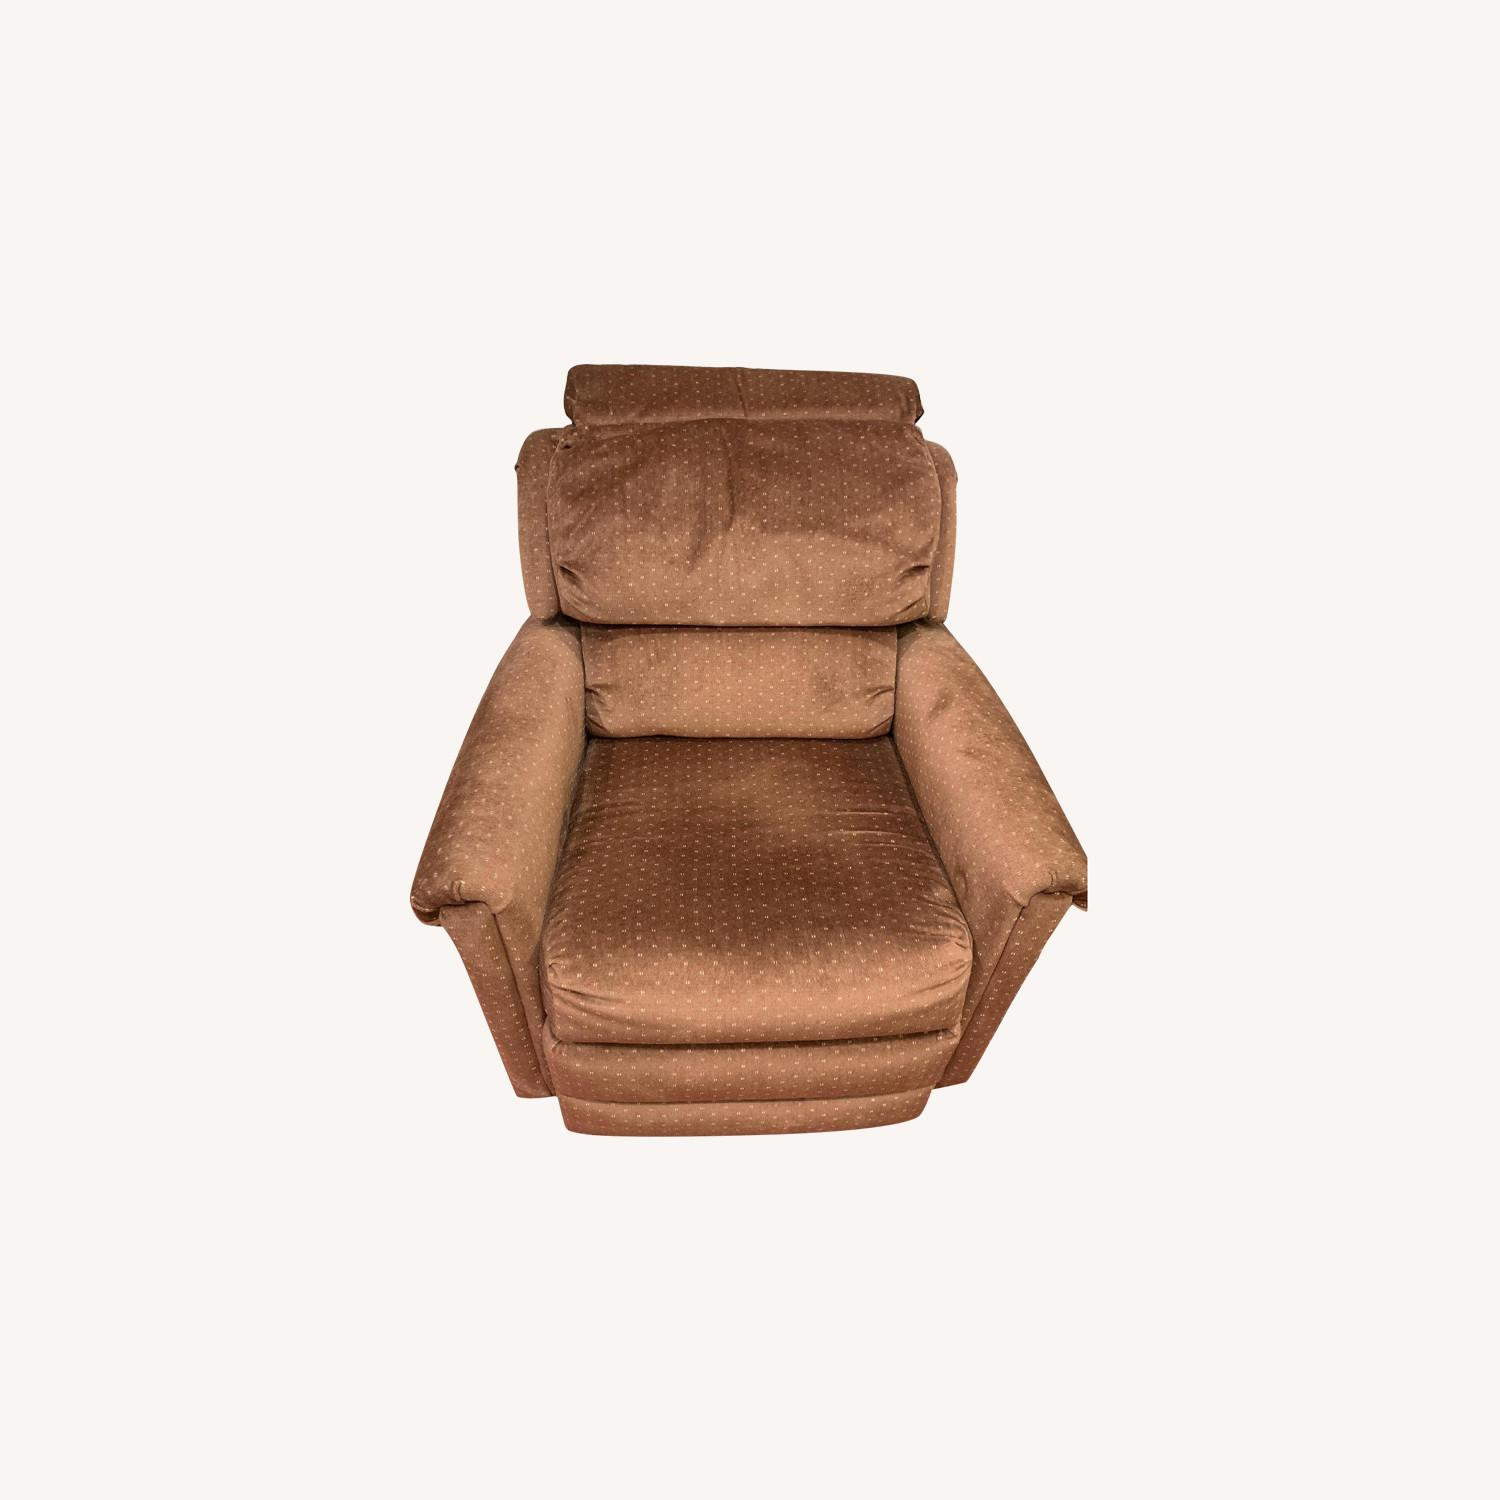 Castro Convertibles Reading/Recliner Chair - image-0